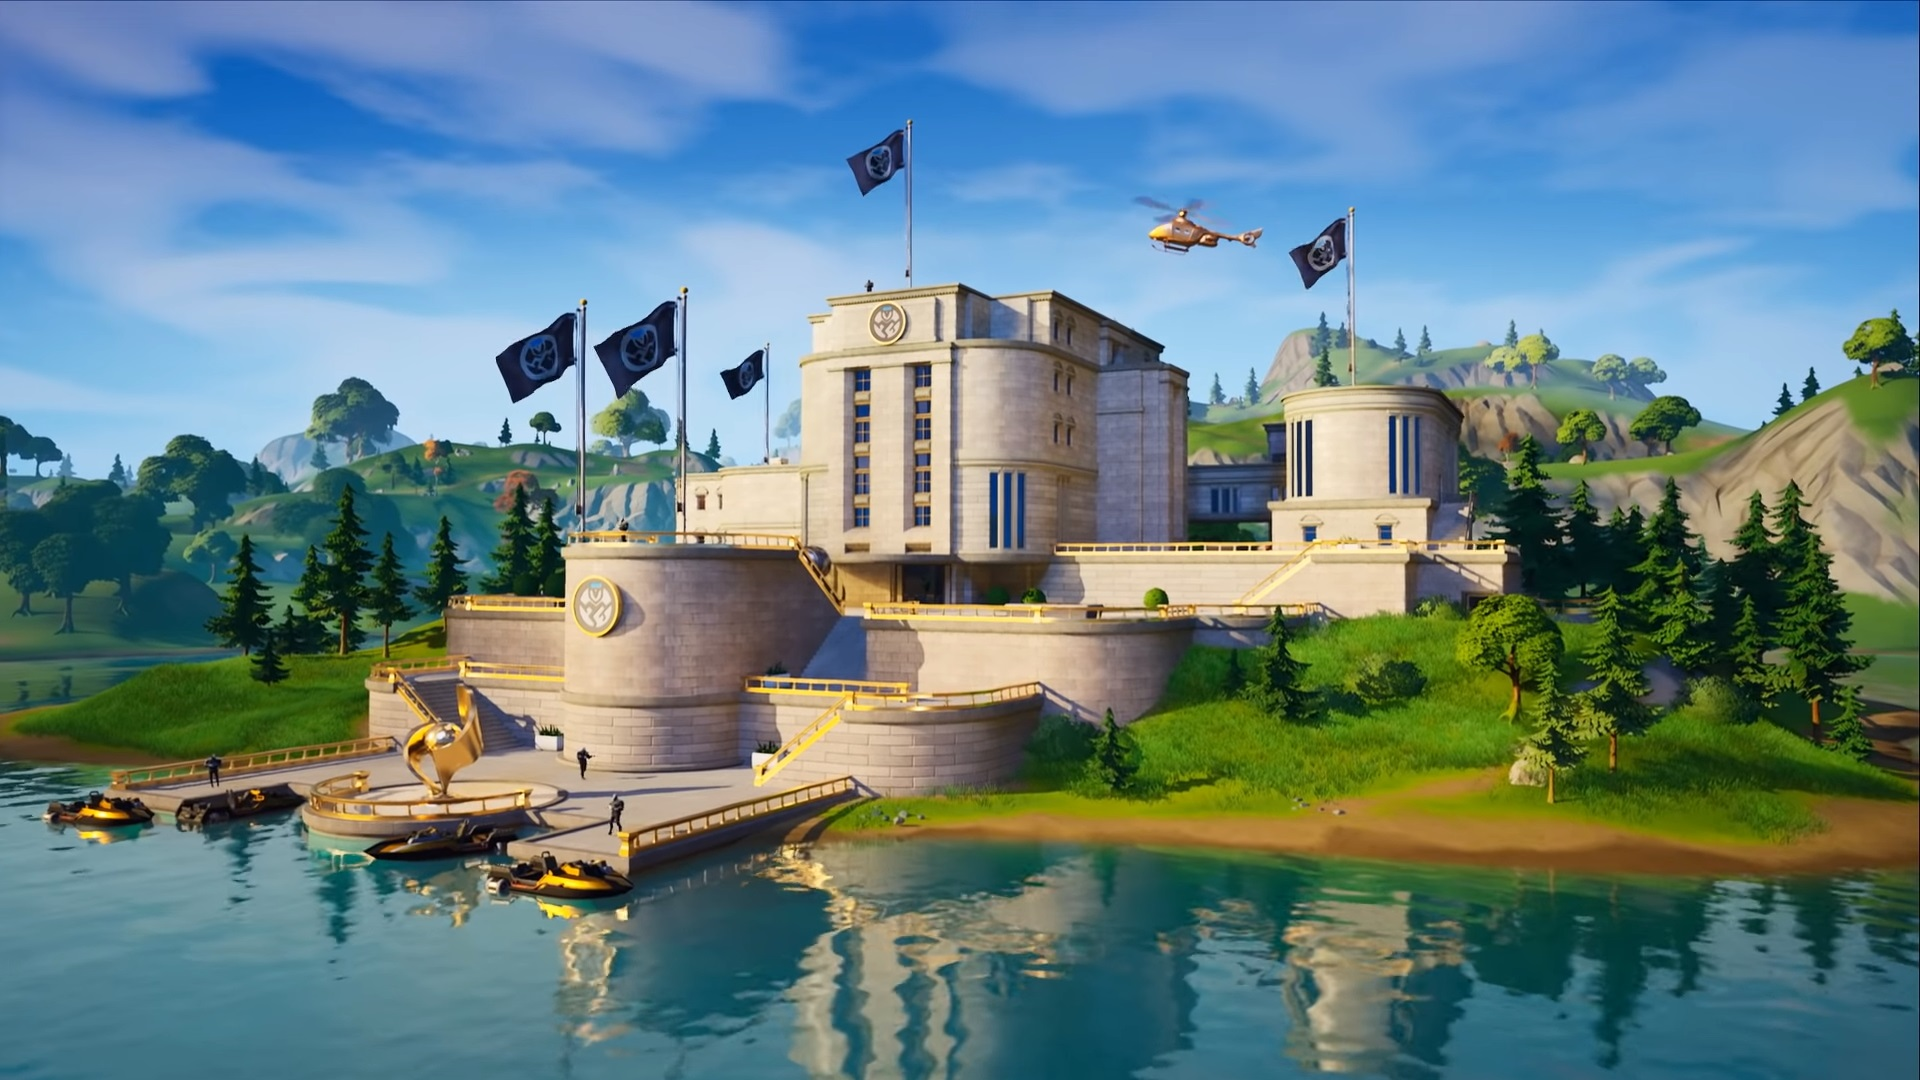 """How to """"Destroy Ghost Dropboxes using Explosives"""" or """"Destroy Shadow Dropboxes using Explosives"""" in Fortnite Chapter 2, season 2"""